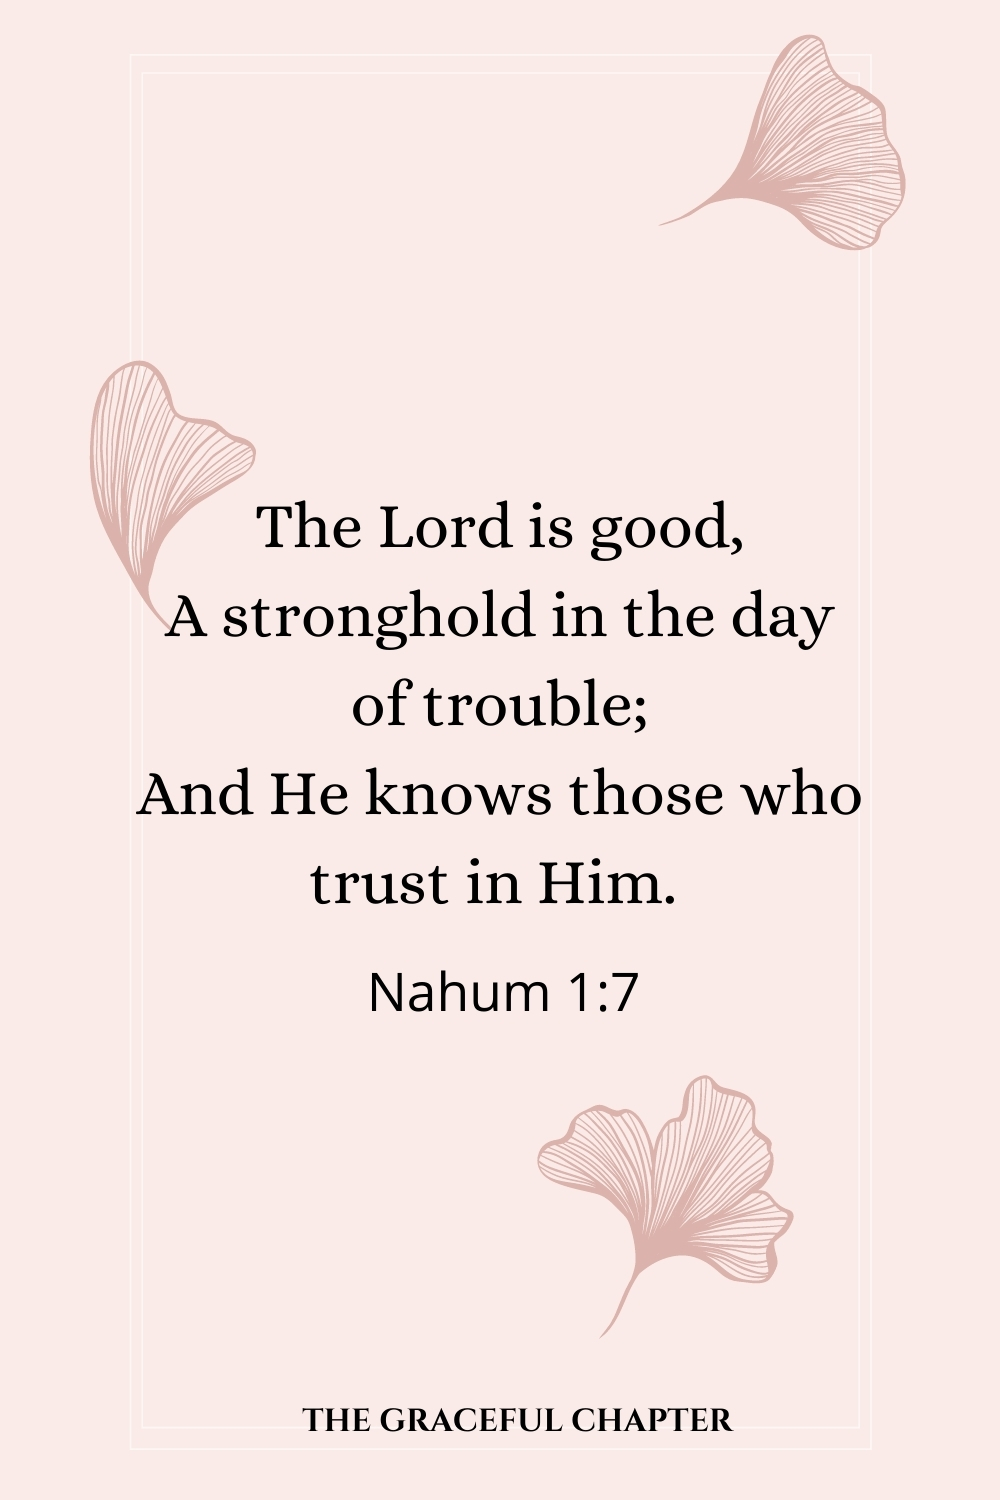 The Lord is good, A stronghold in the day of trouble; And He knows those who trust in Him.  Nahum 1:7